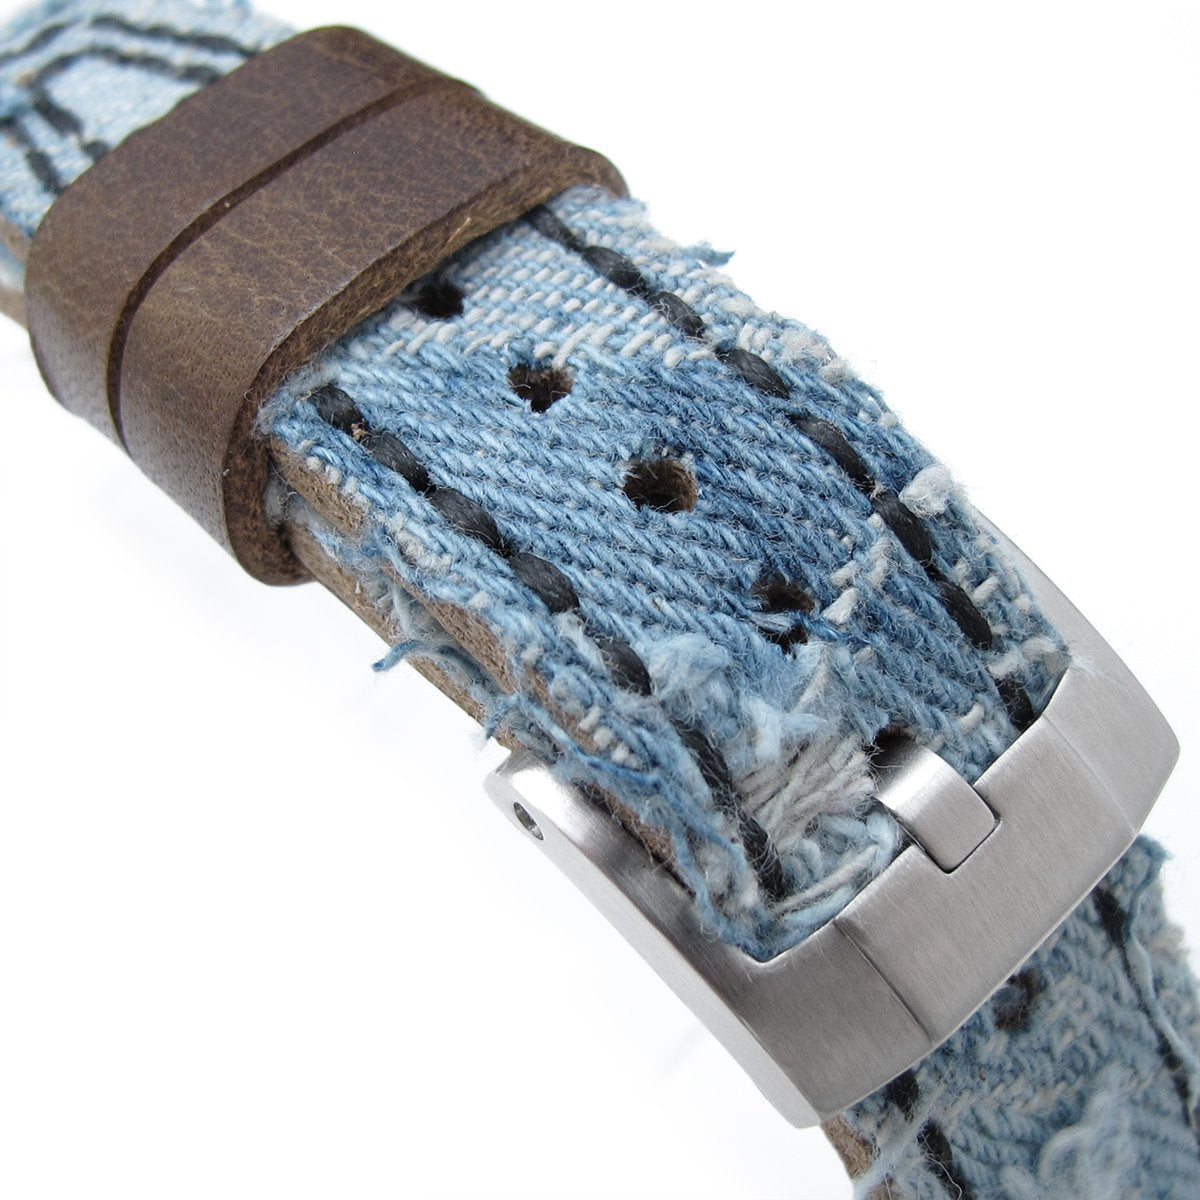 21mm 22mm MiLTAT Distressed Light Blue Denim Watch Strap Rivet Military strap Strapcode Watch Bands